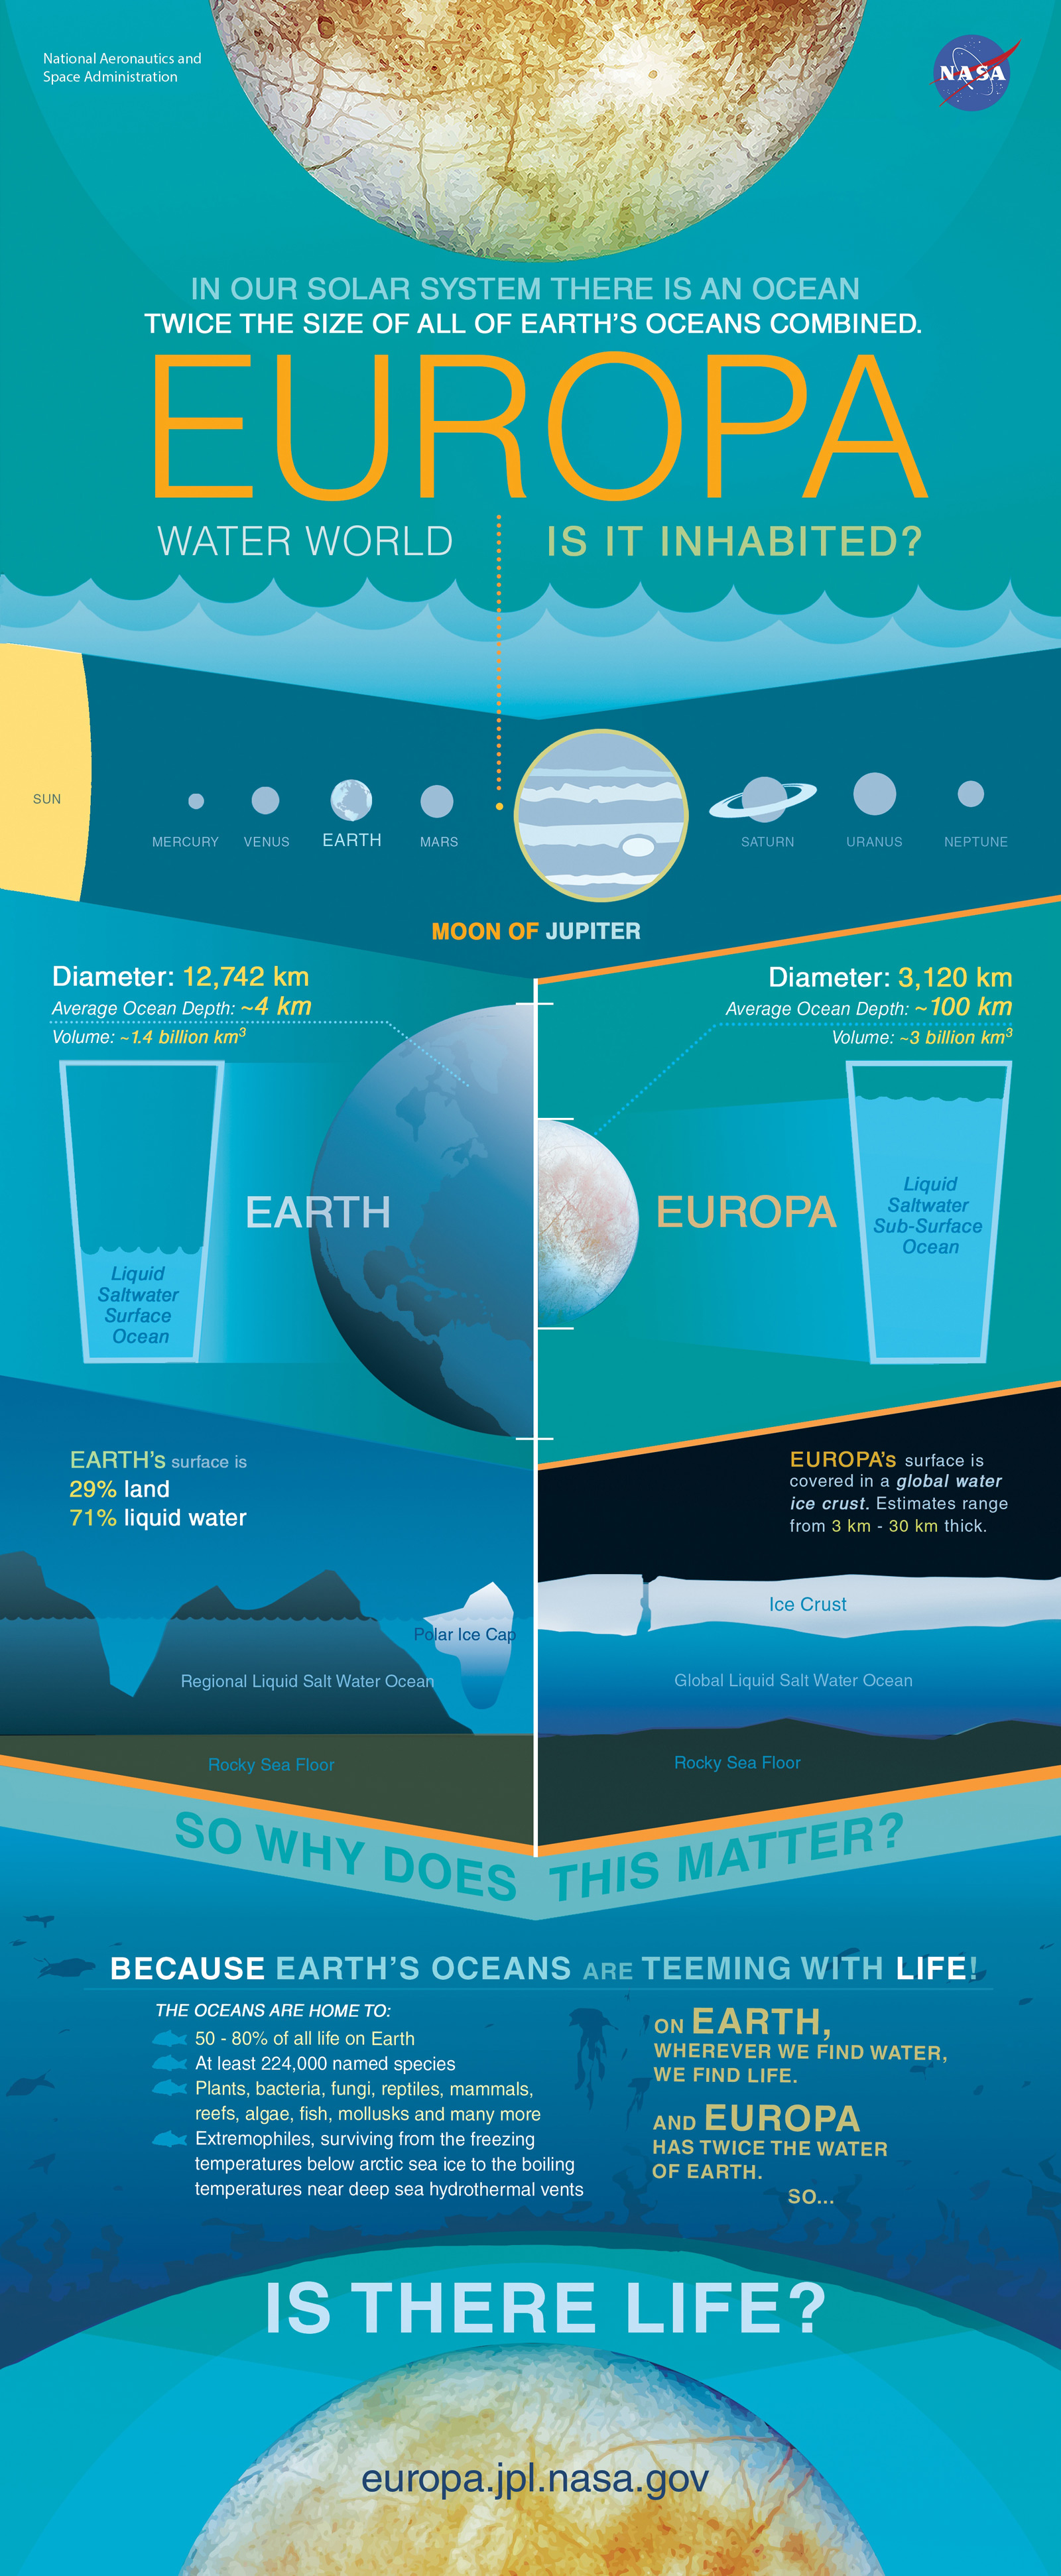 Infographic comparing Europa and Earth.